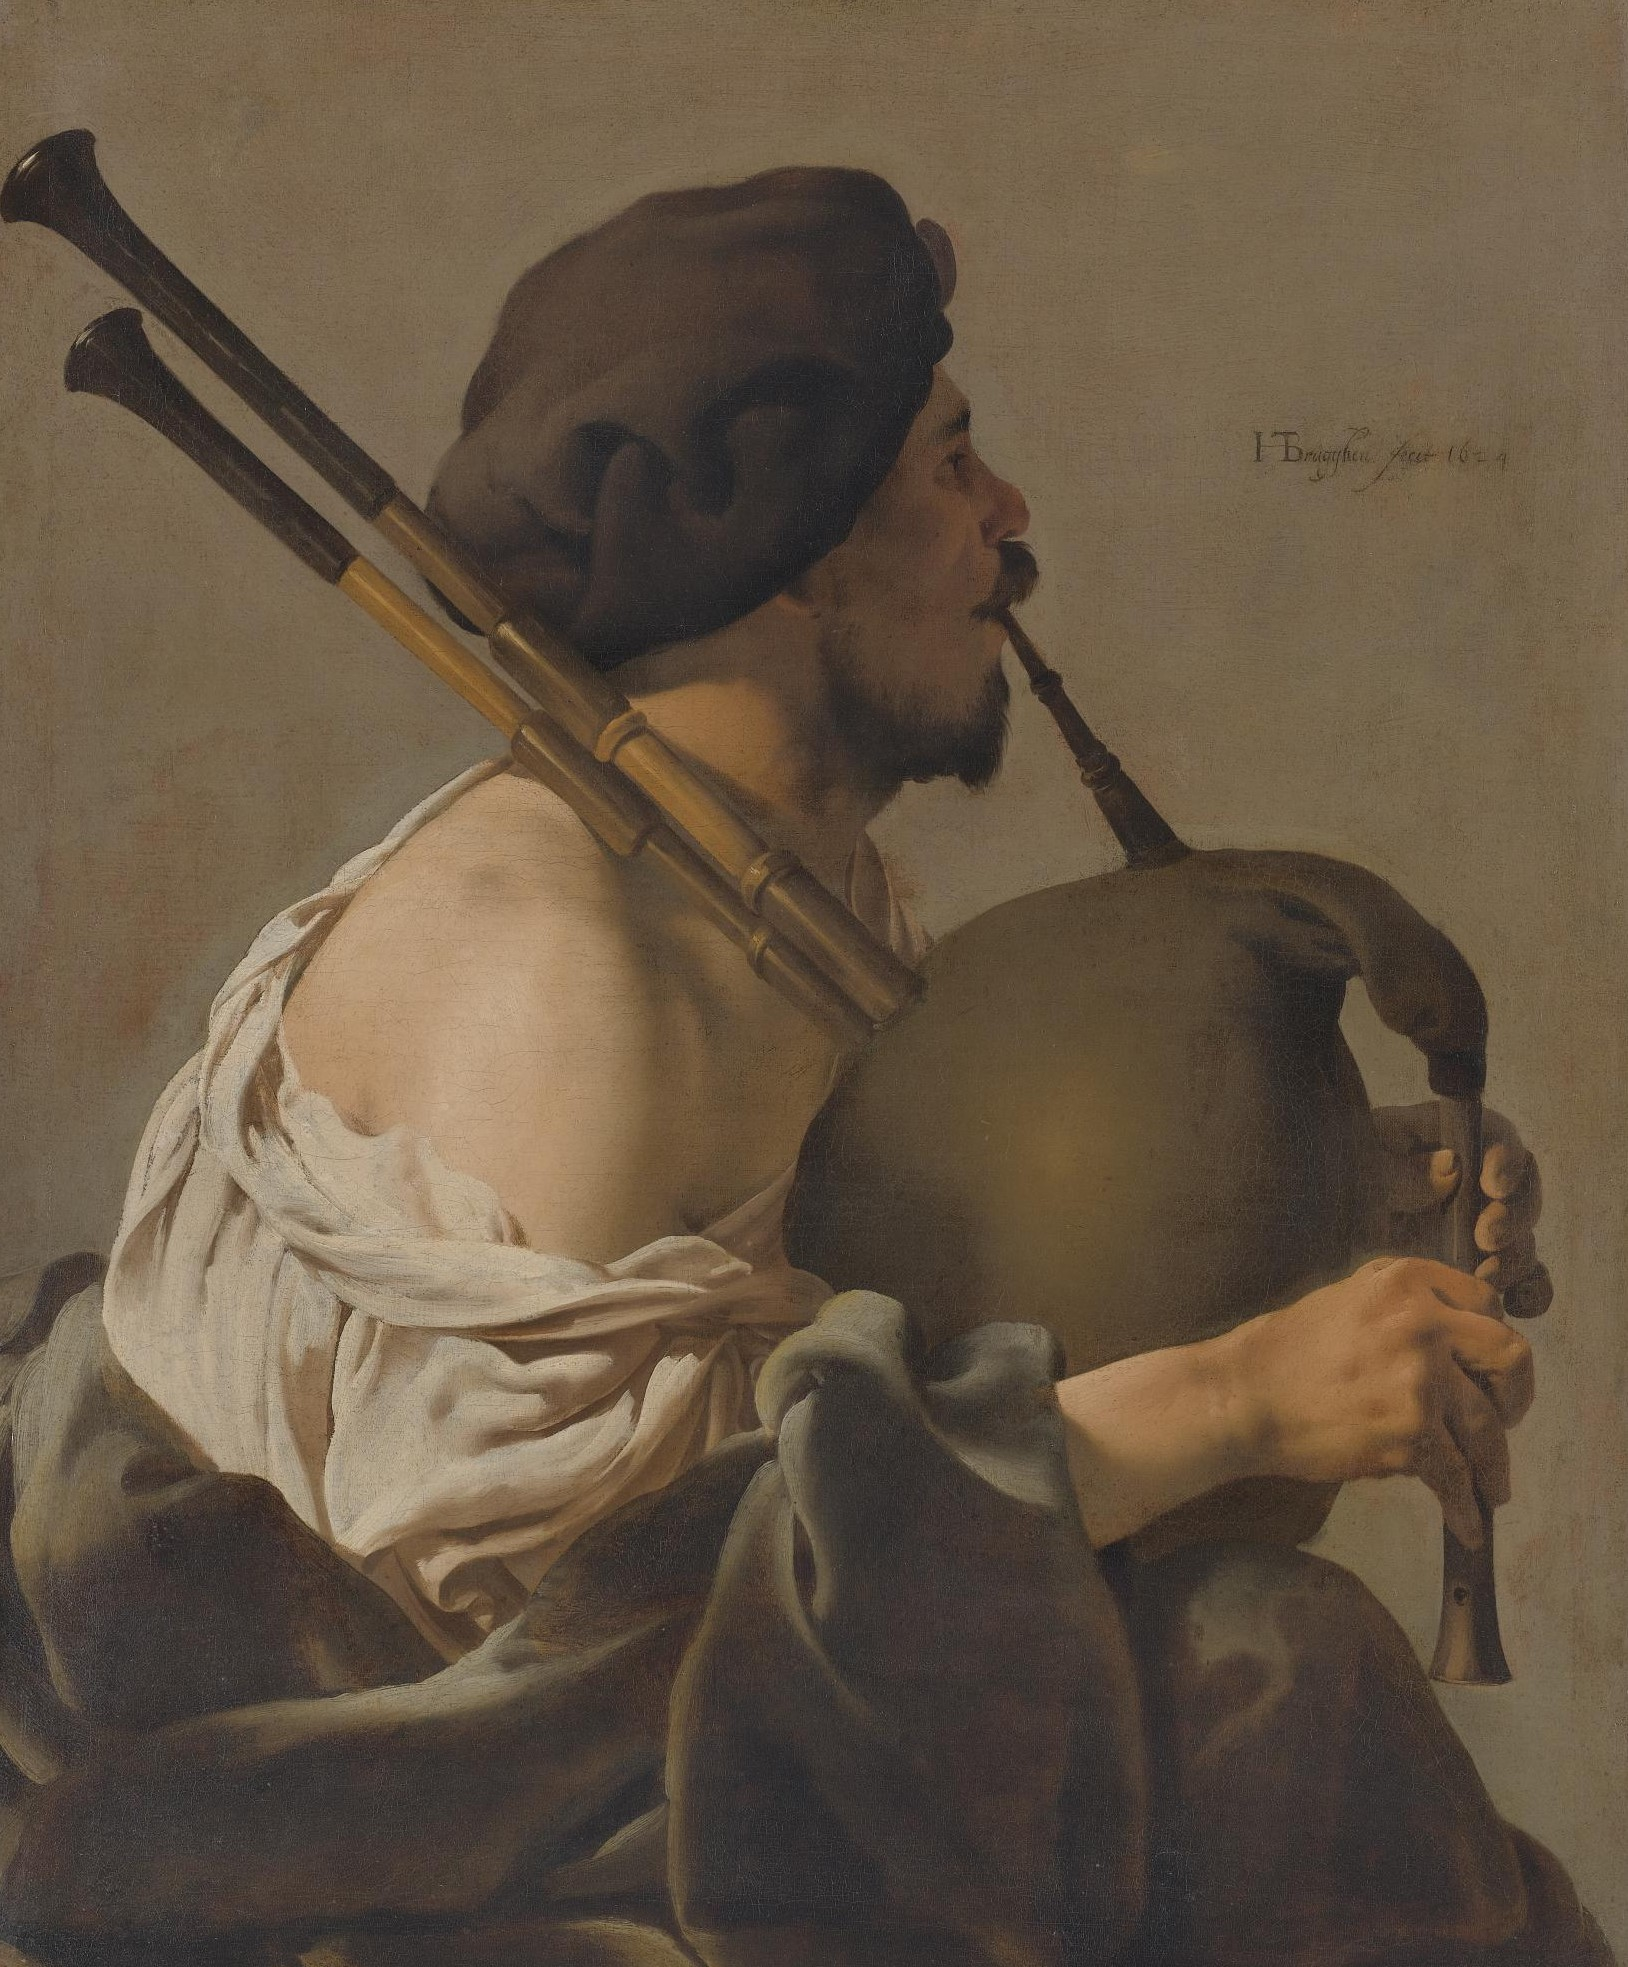 Ter Brugghen 1624 BAGPIPE PLAYER IN PROFILE coll priv